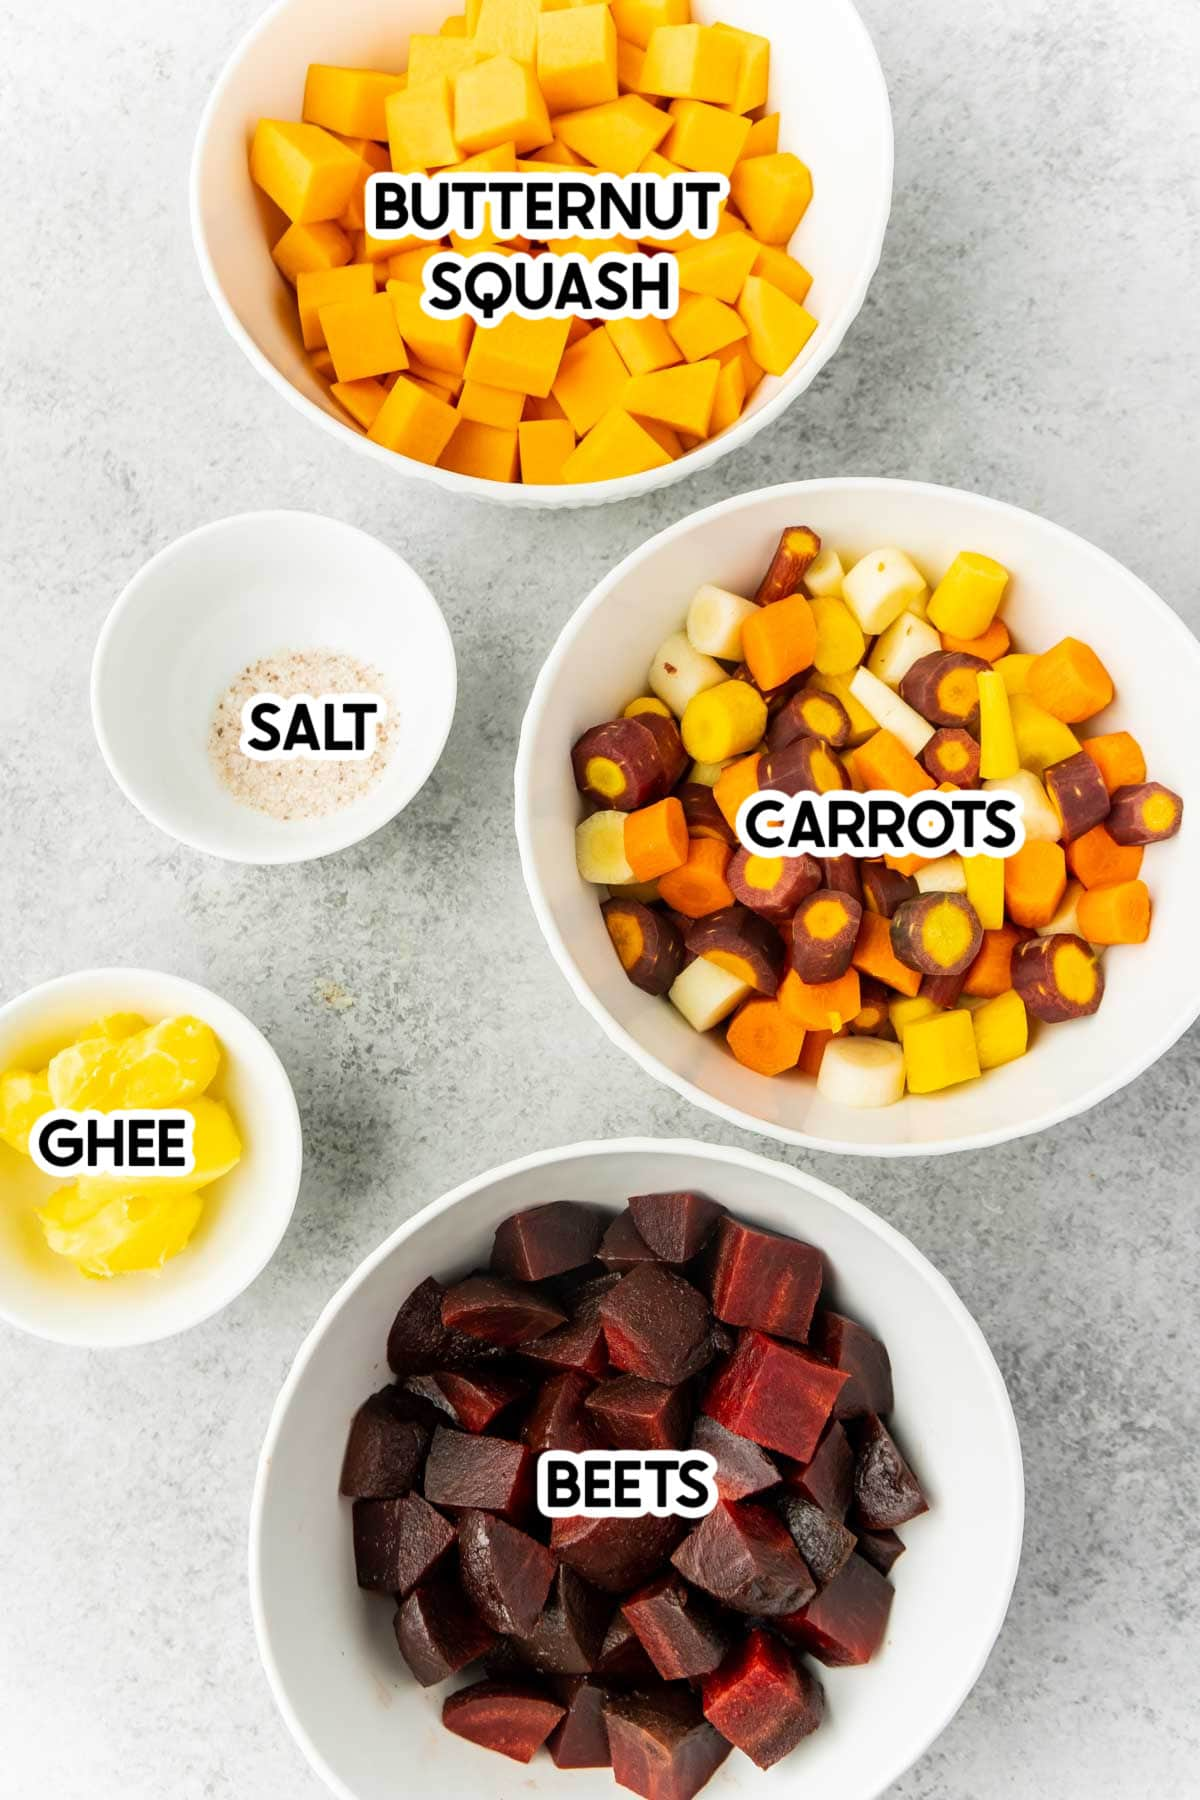 Root vegetables in white bowls with labels on top